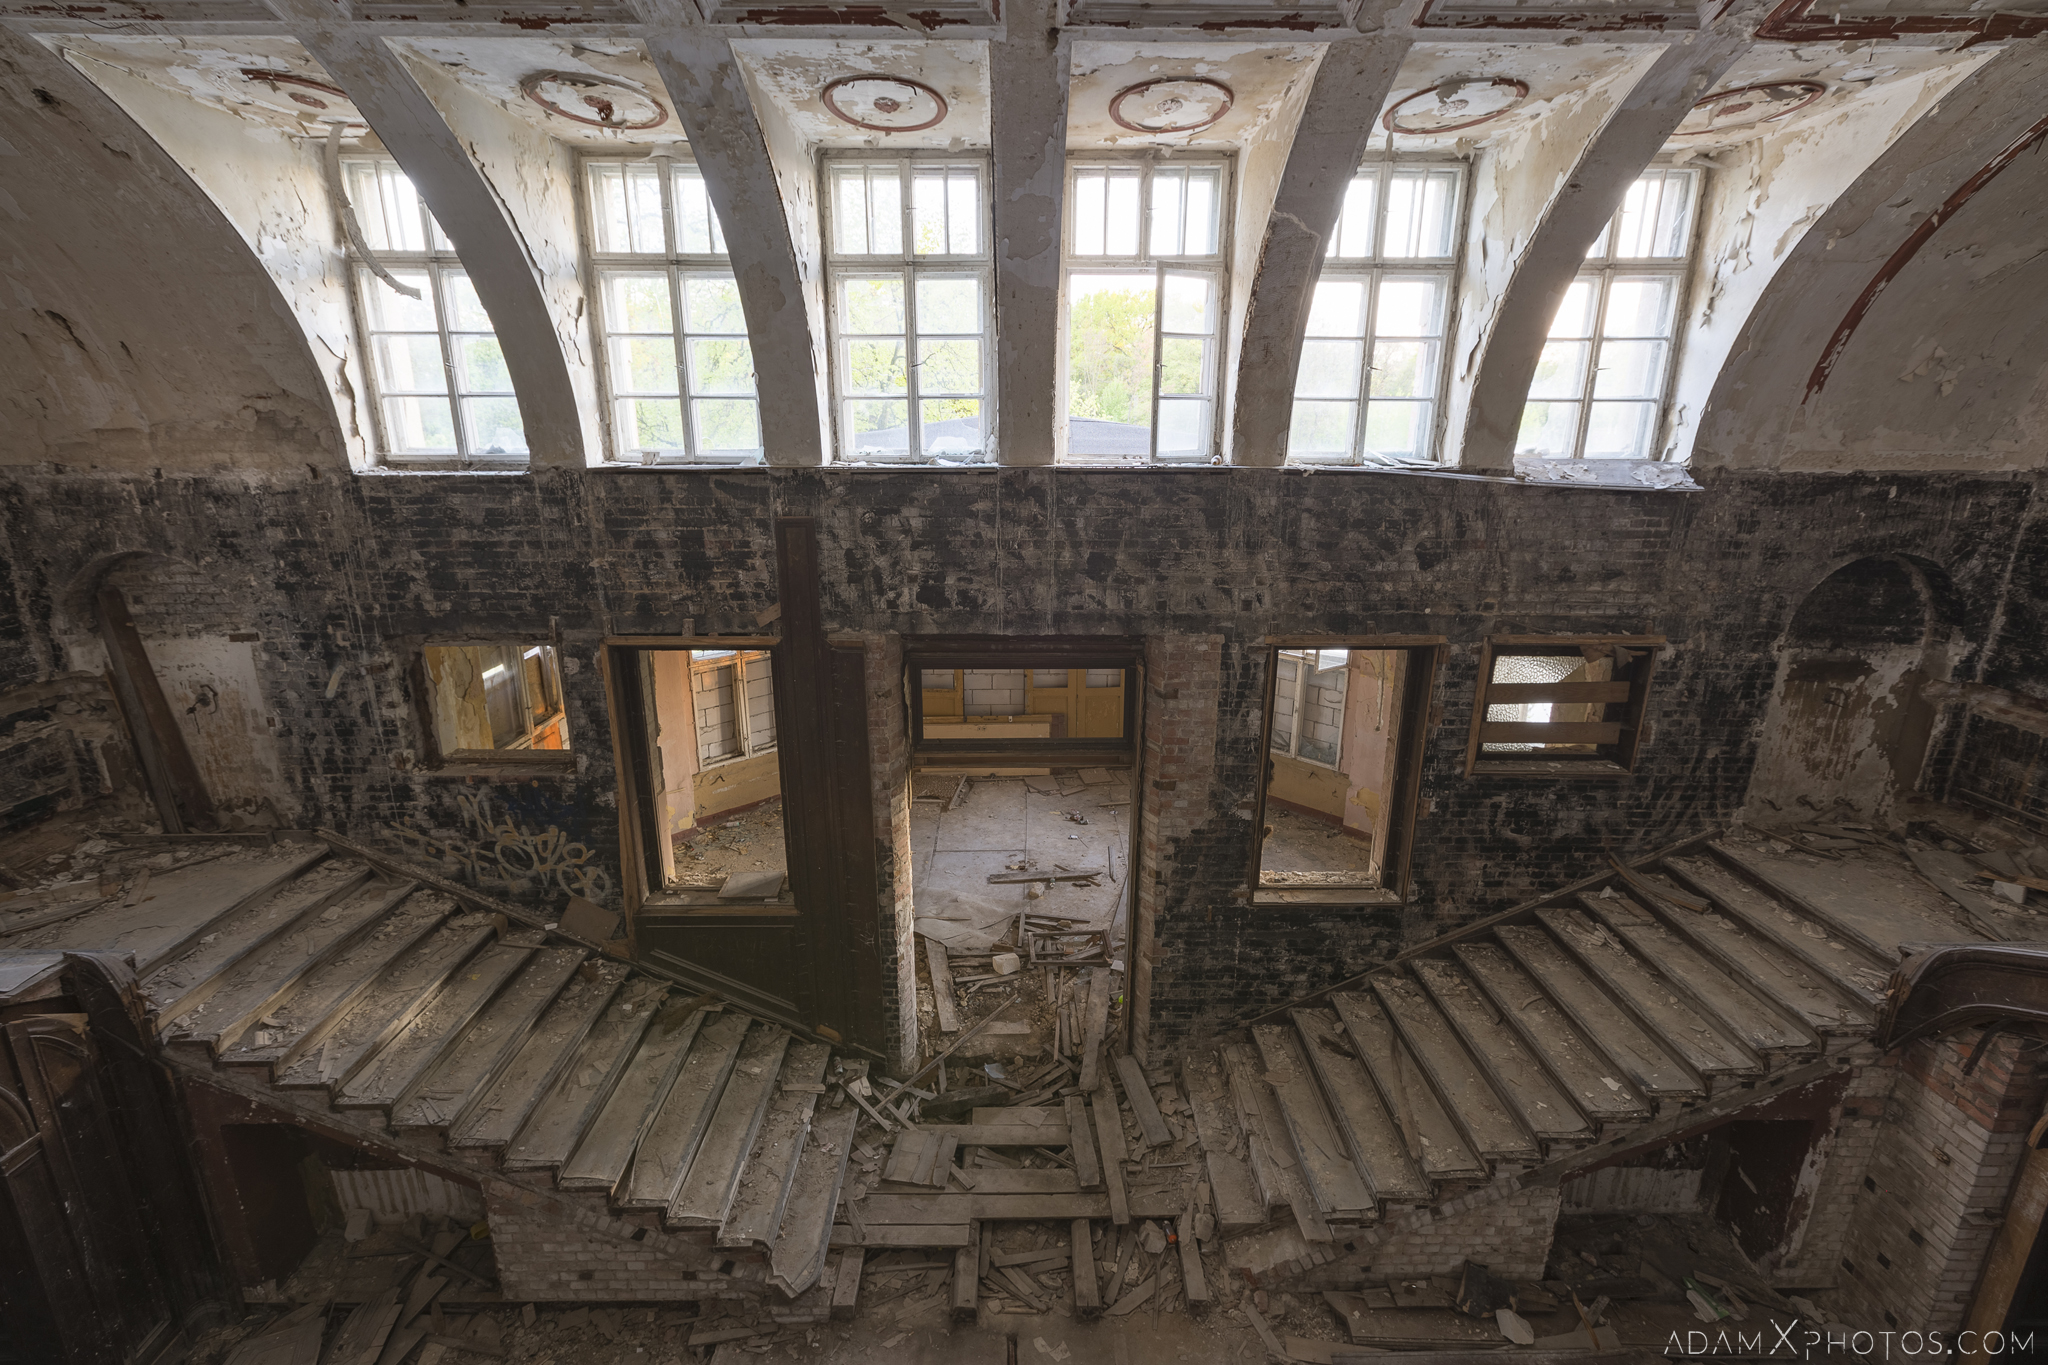 View from balcony looking down Main hall twin split stairs staircase Great Belcz Palace Pałac w Bełczu Wielkim Urbex Poland Adam X Urban Exploration Access 2016 Abandoned decay lost forgotten derelict location haunting eerie